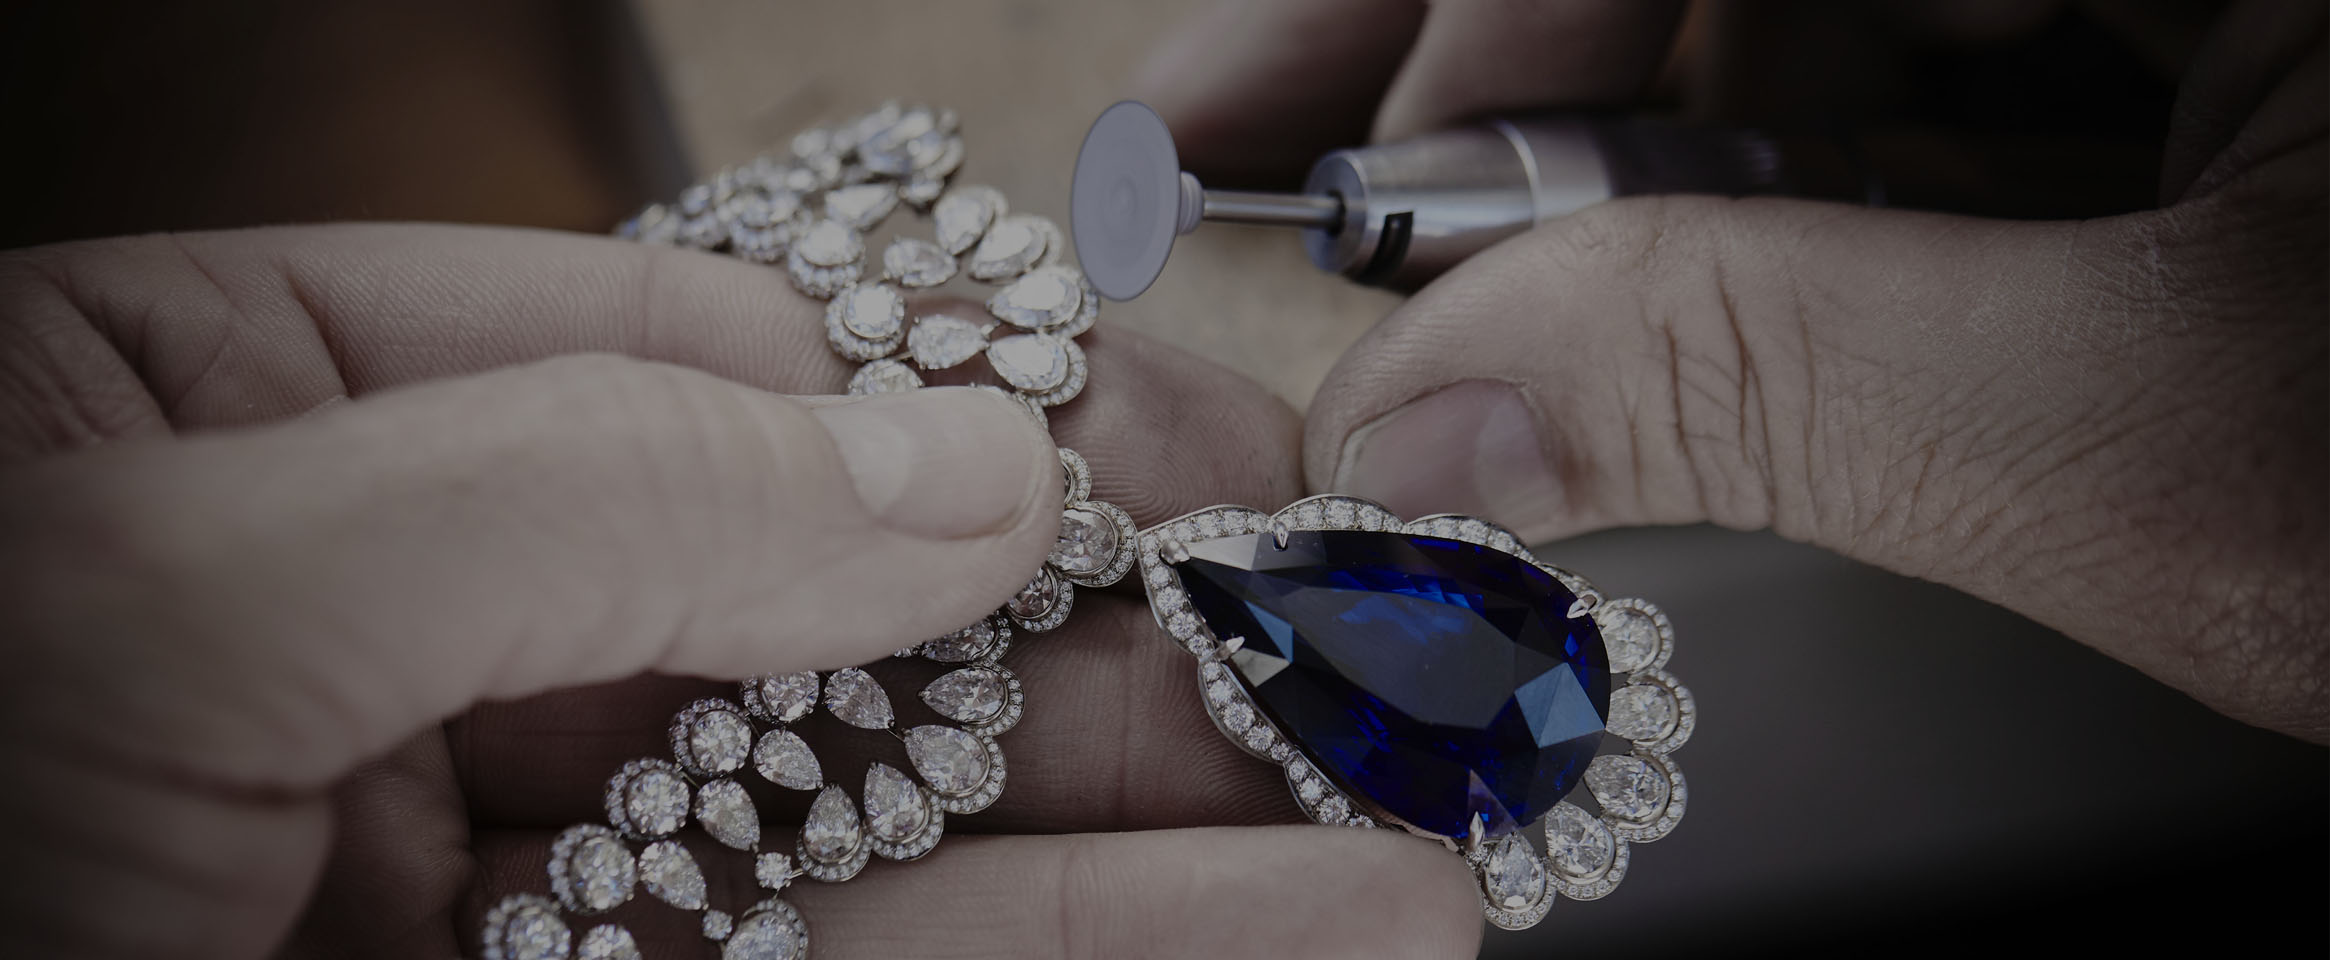 CHOPARD, <br>HIGH JEWELLERY MANUFACTURER